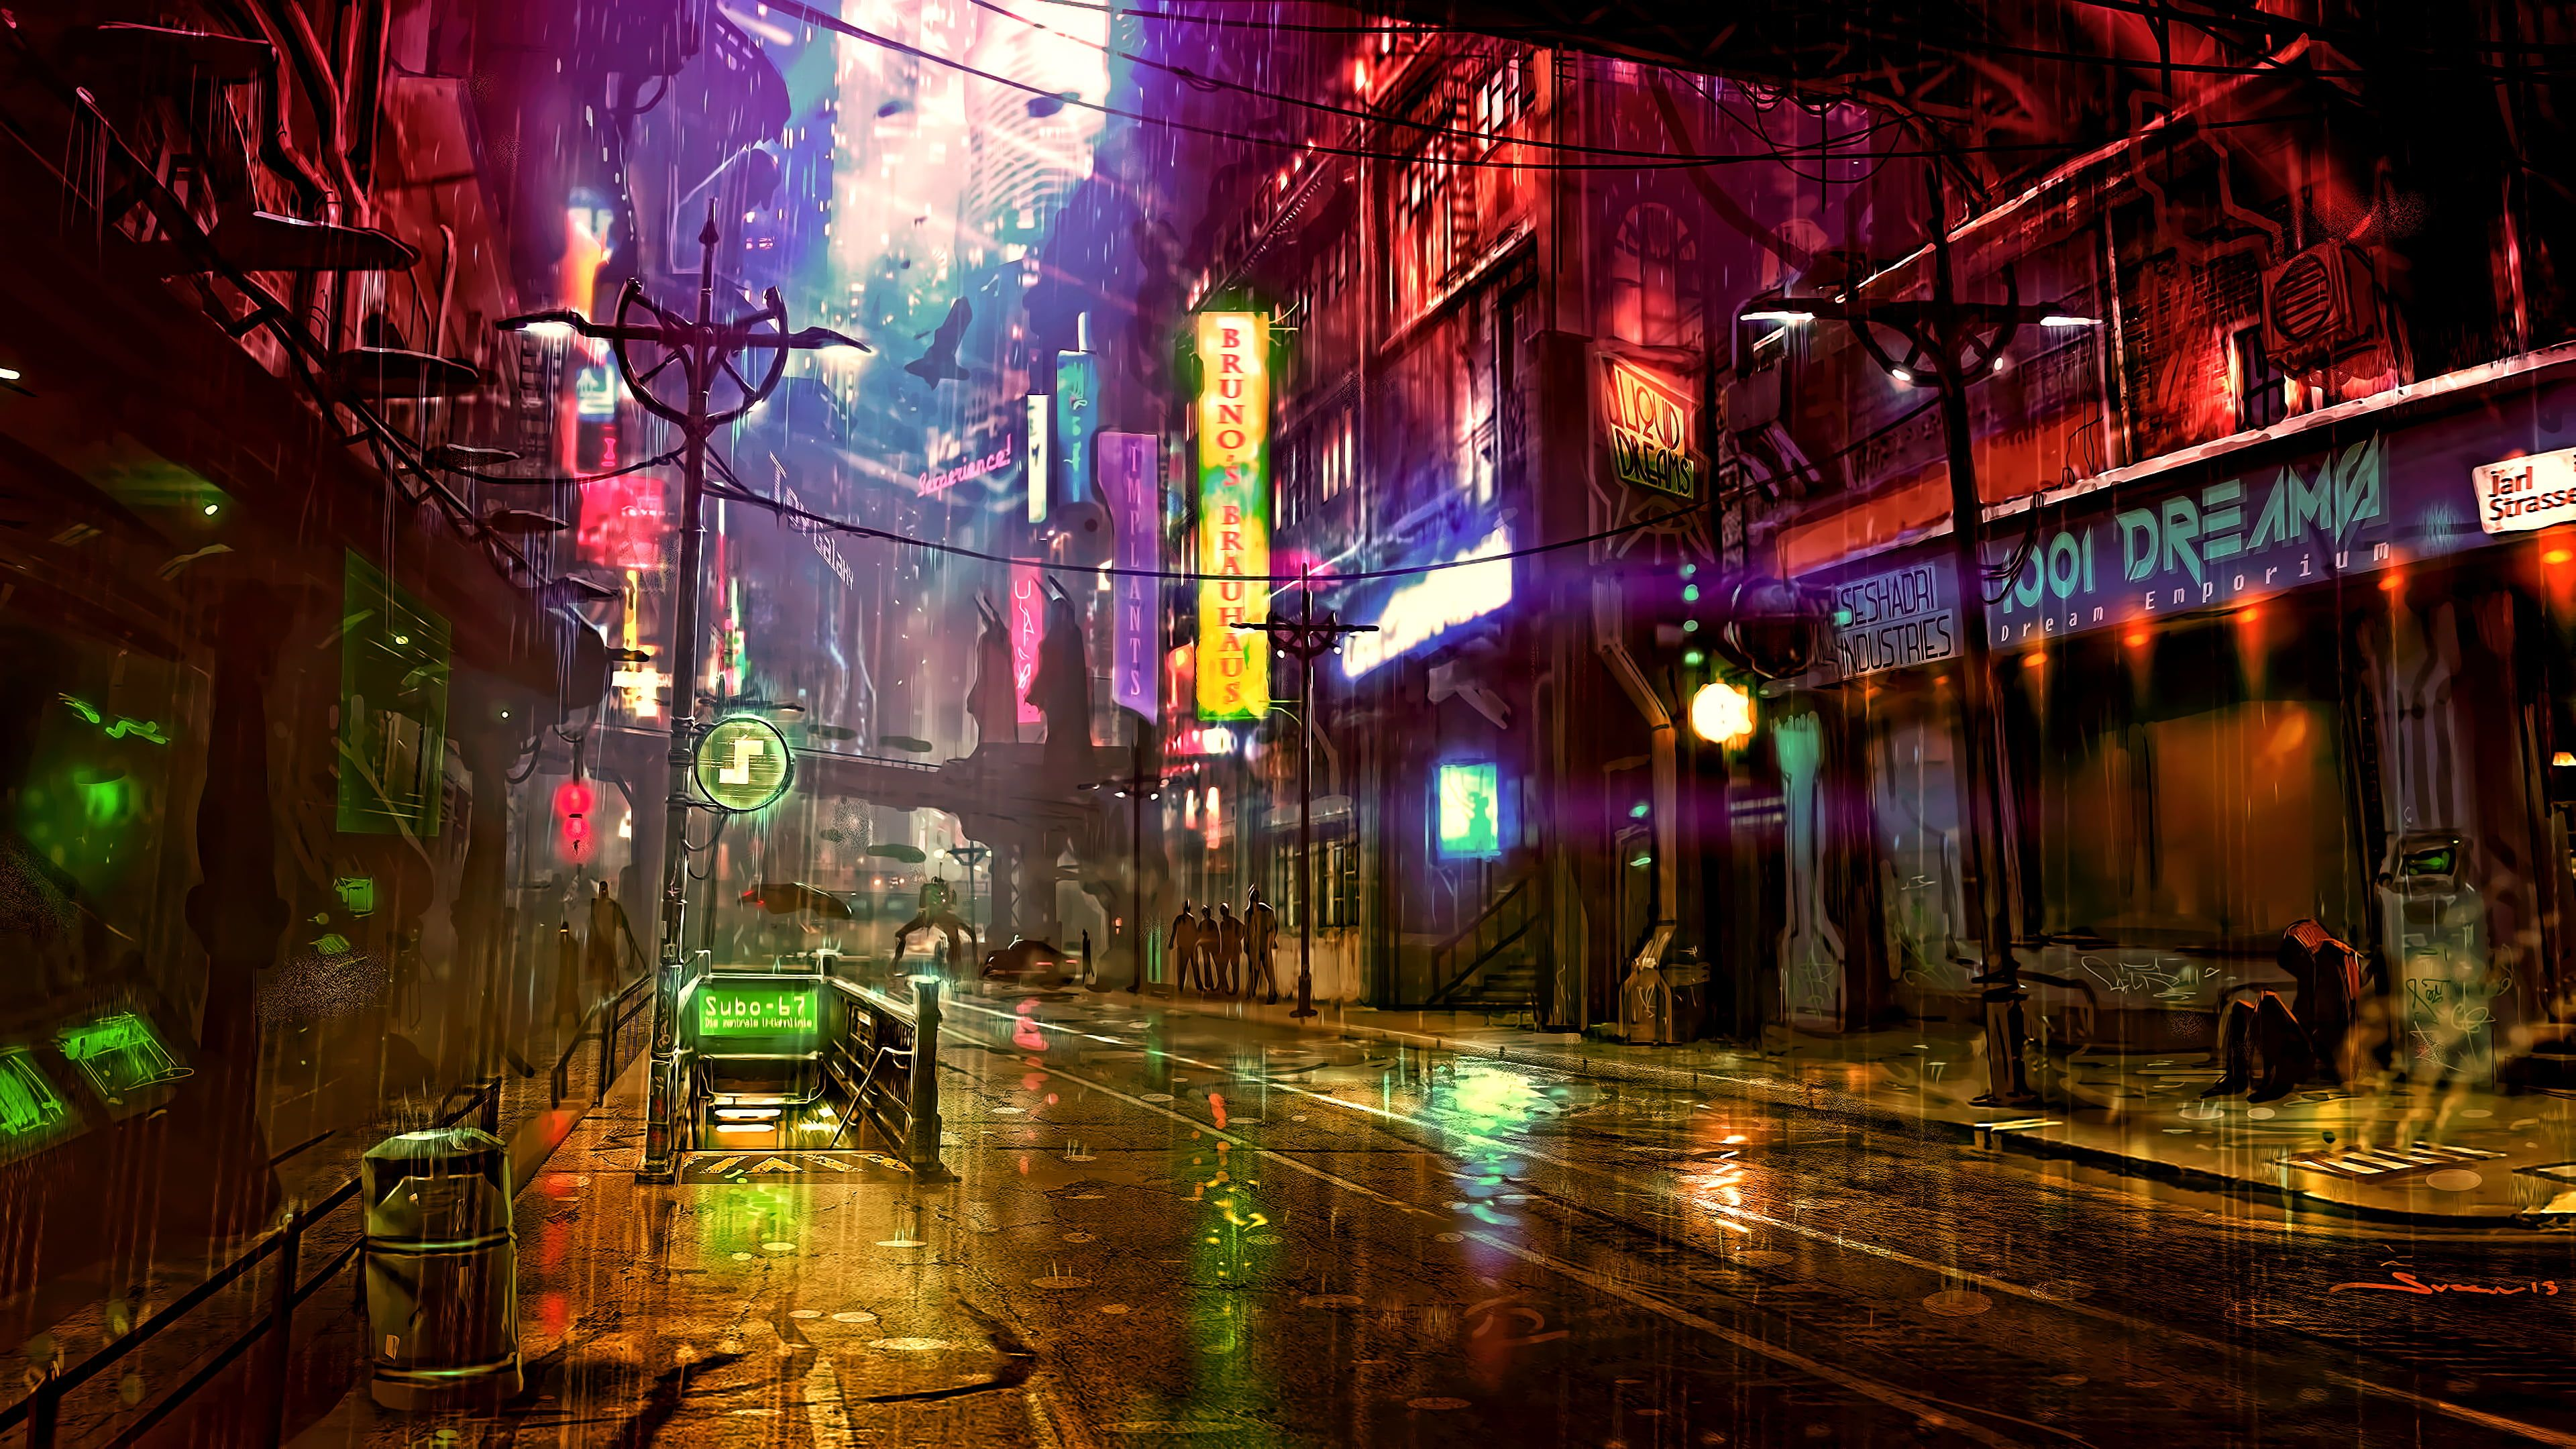 Digital Wallpaper Of City Street City View During Nighttime Night Artwork Futuristic City Cyberpunk Cyber Sc Futuristic City City Wallpaper Neon Wallpaper